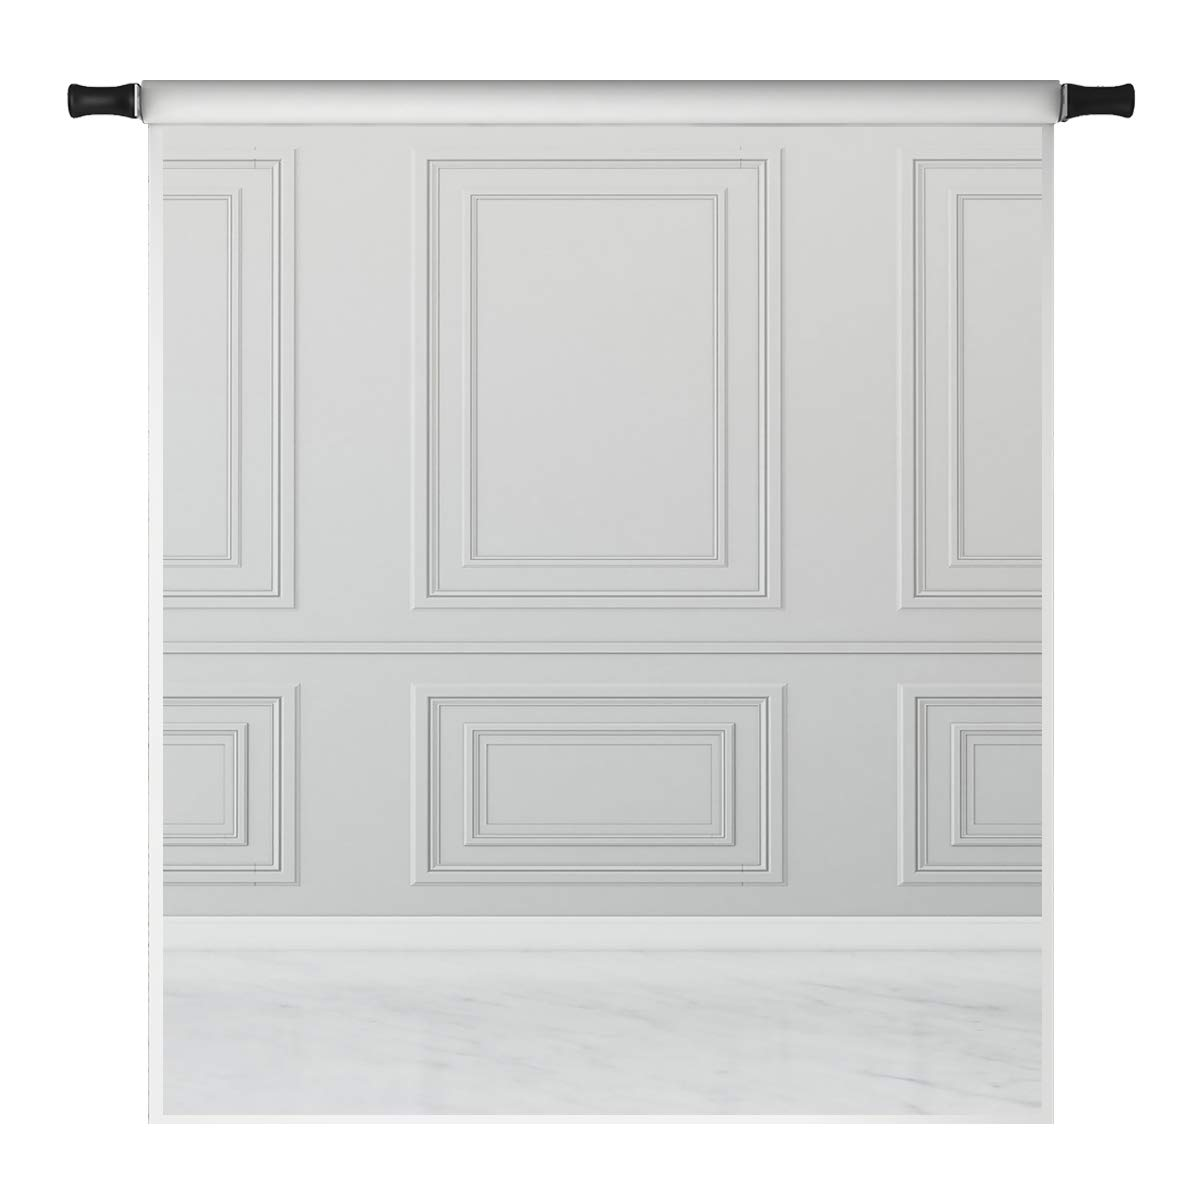 Kate 5x7ft Grey Wall Backdrops for Photoshoot Empty Room White Floor Classic Interior Design Microfiber Photo Studio Props by Kate